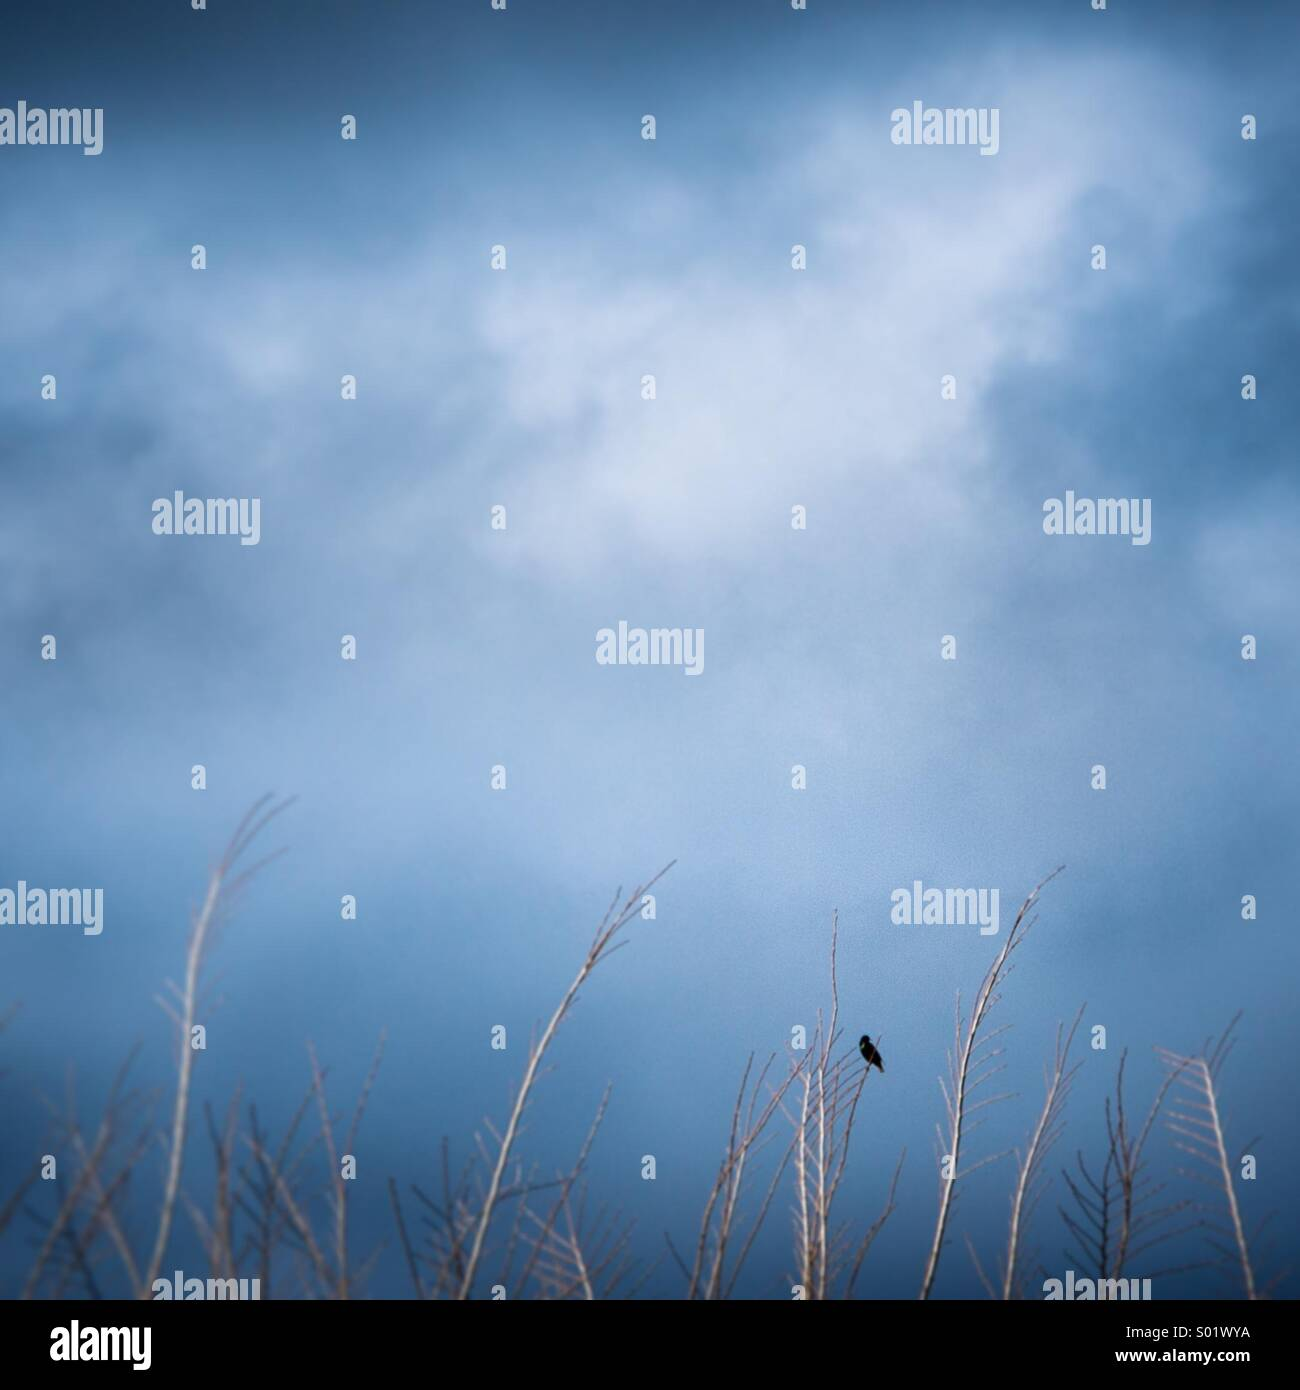 A bird rests on a tree branch under stormy skies. - Stock Image